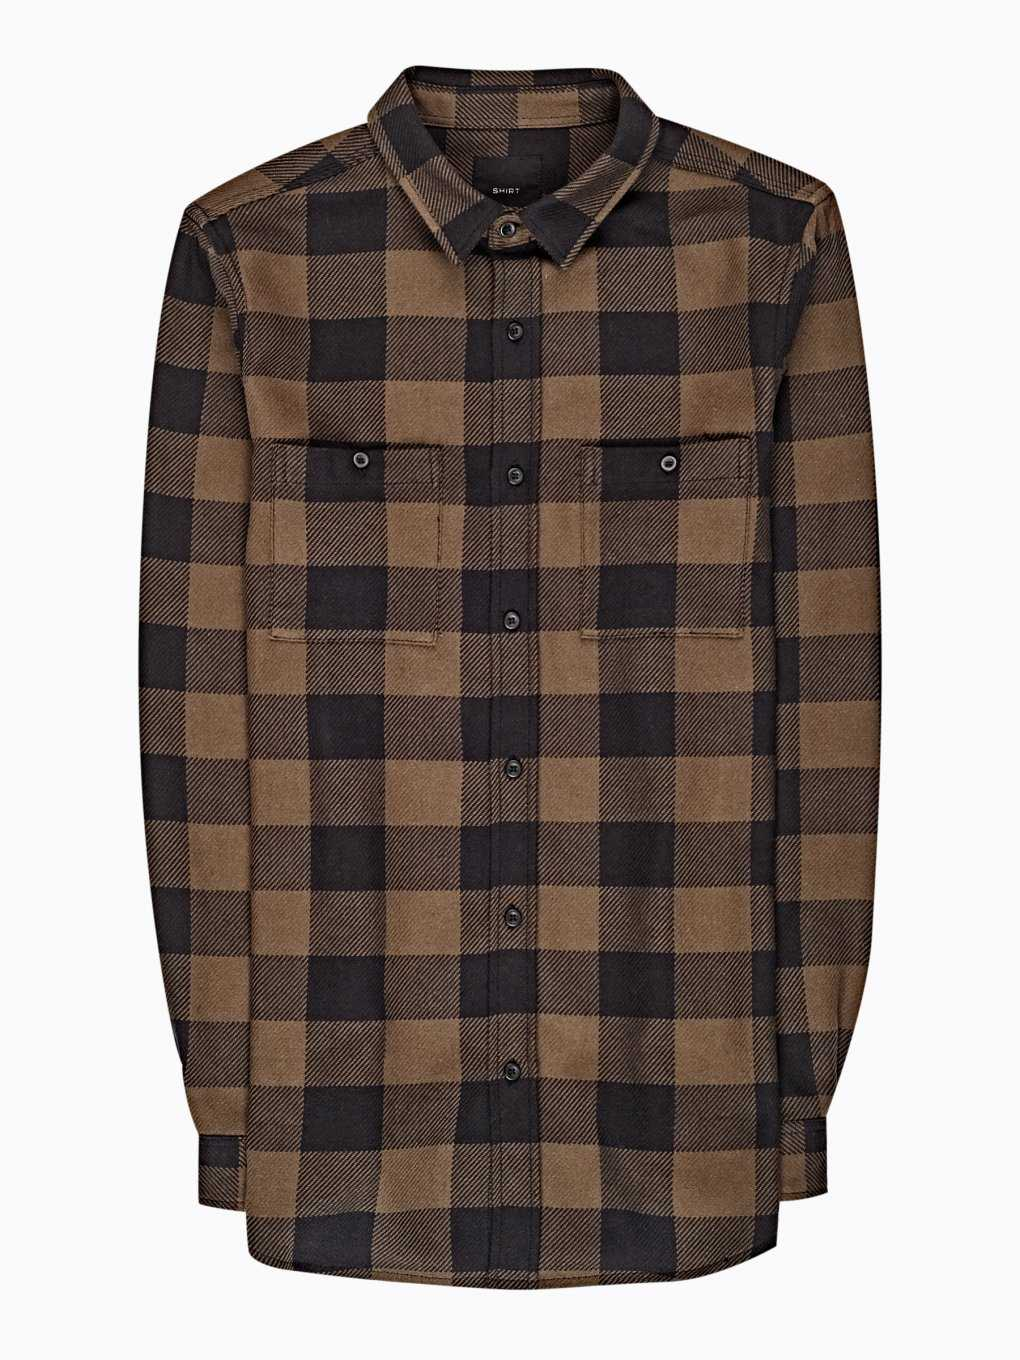 Regular fit plaid flannel shirt